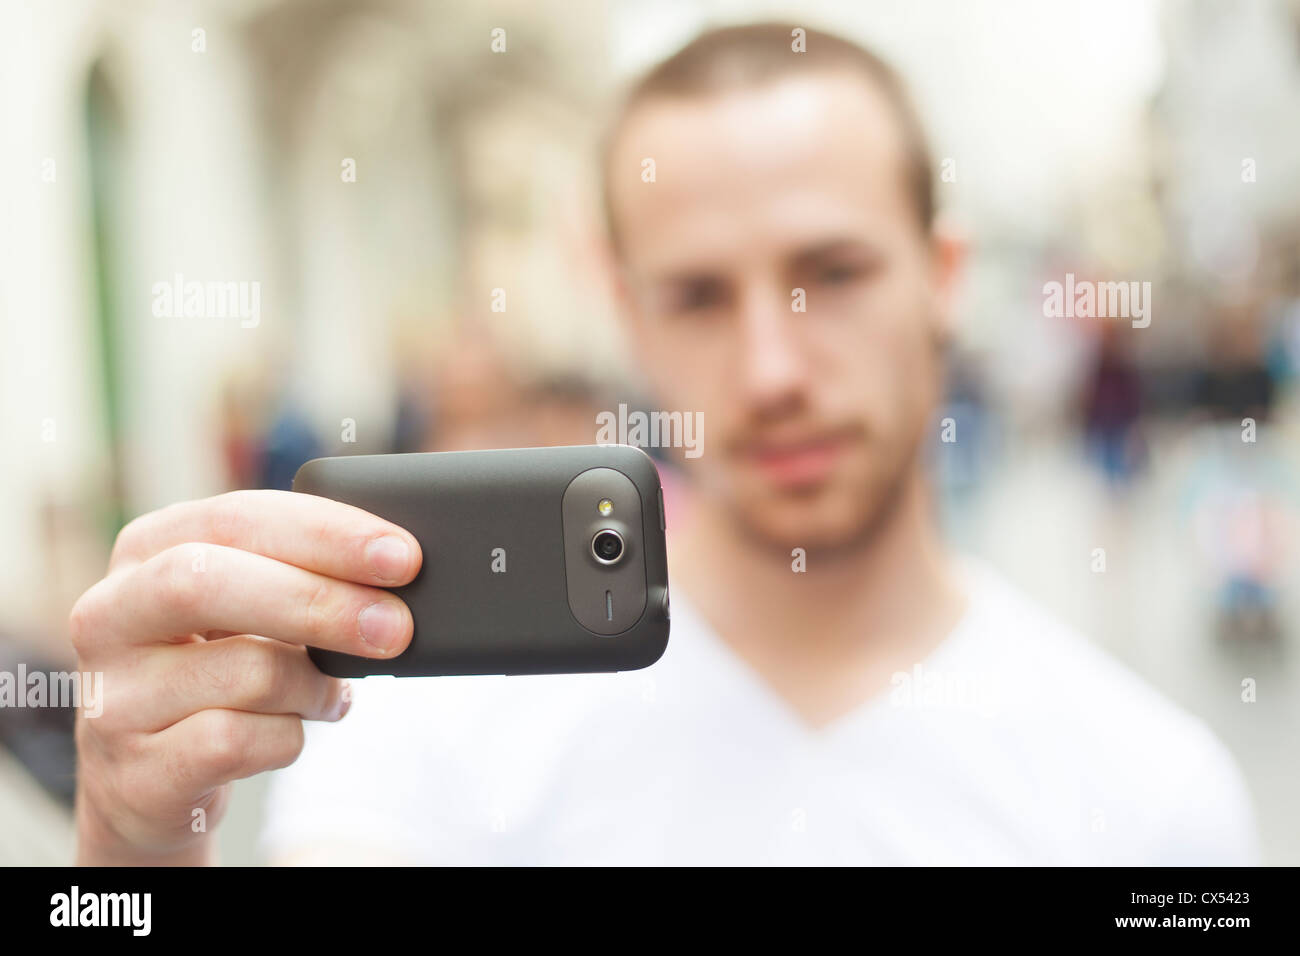 Urban photographer with mobile phone make photo on street - Stock Image